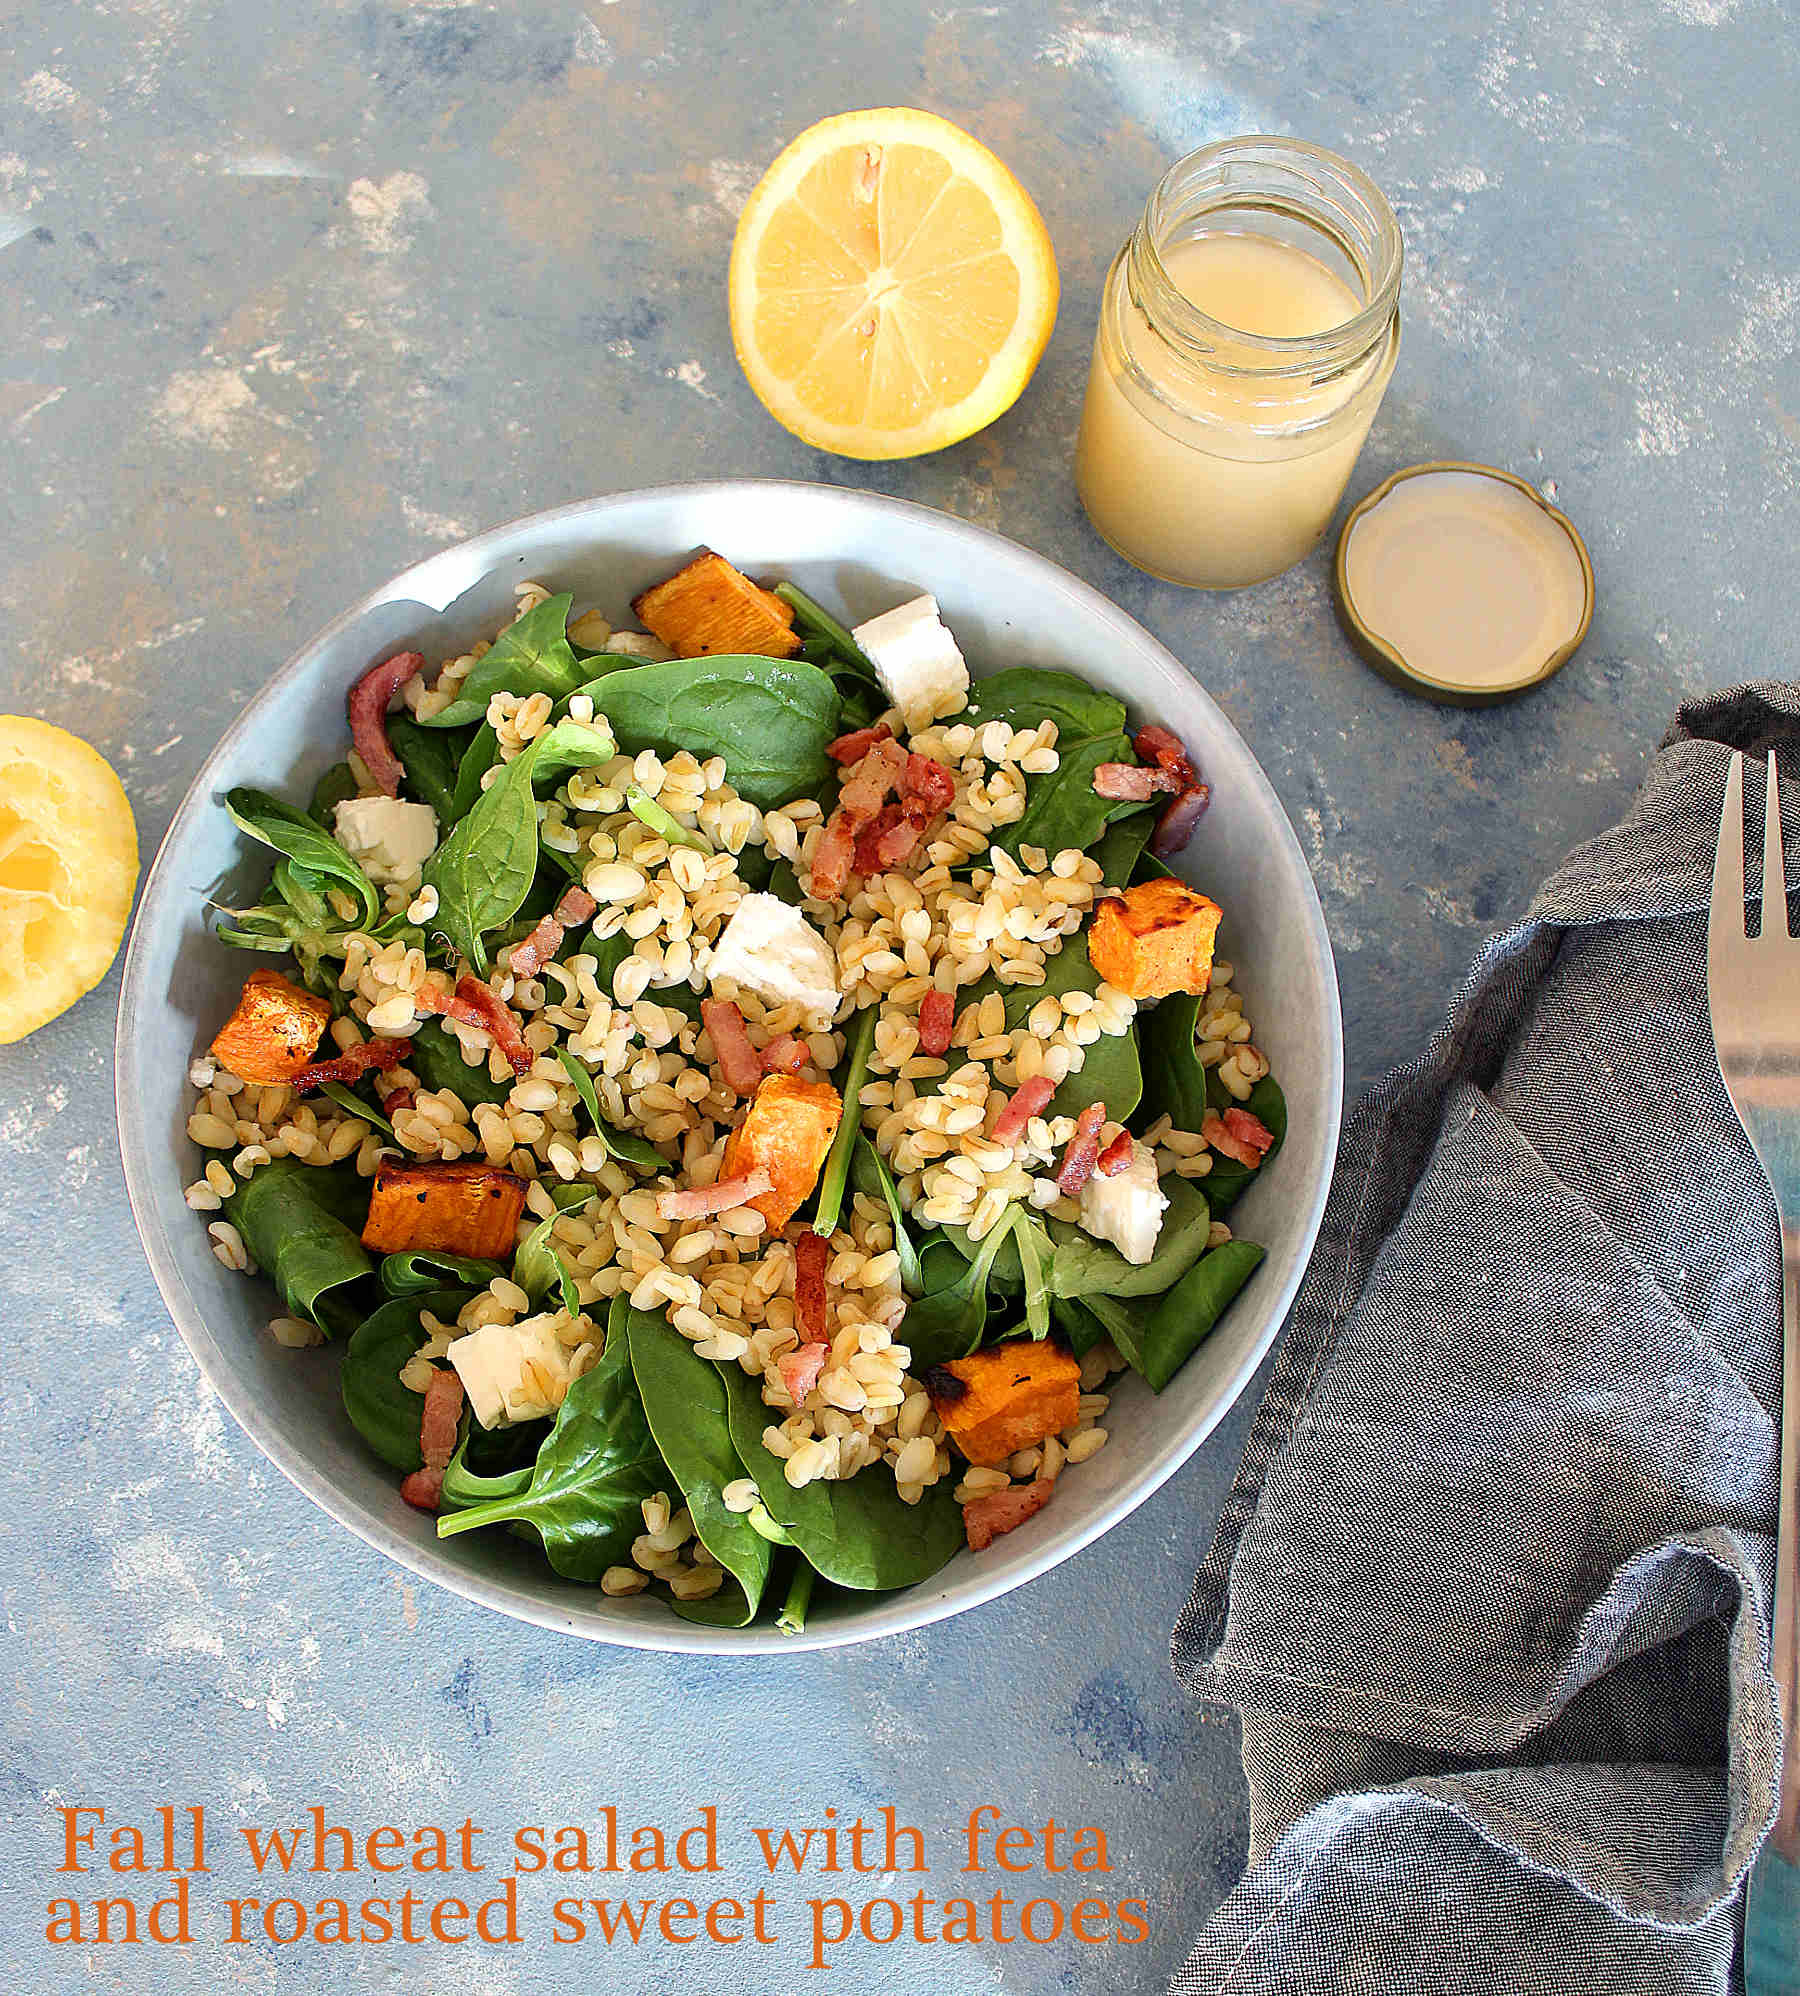 Fall wheat salad with feta cheese and roasted sweet potatoes